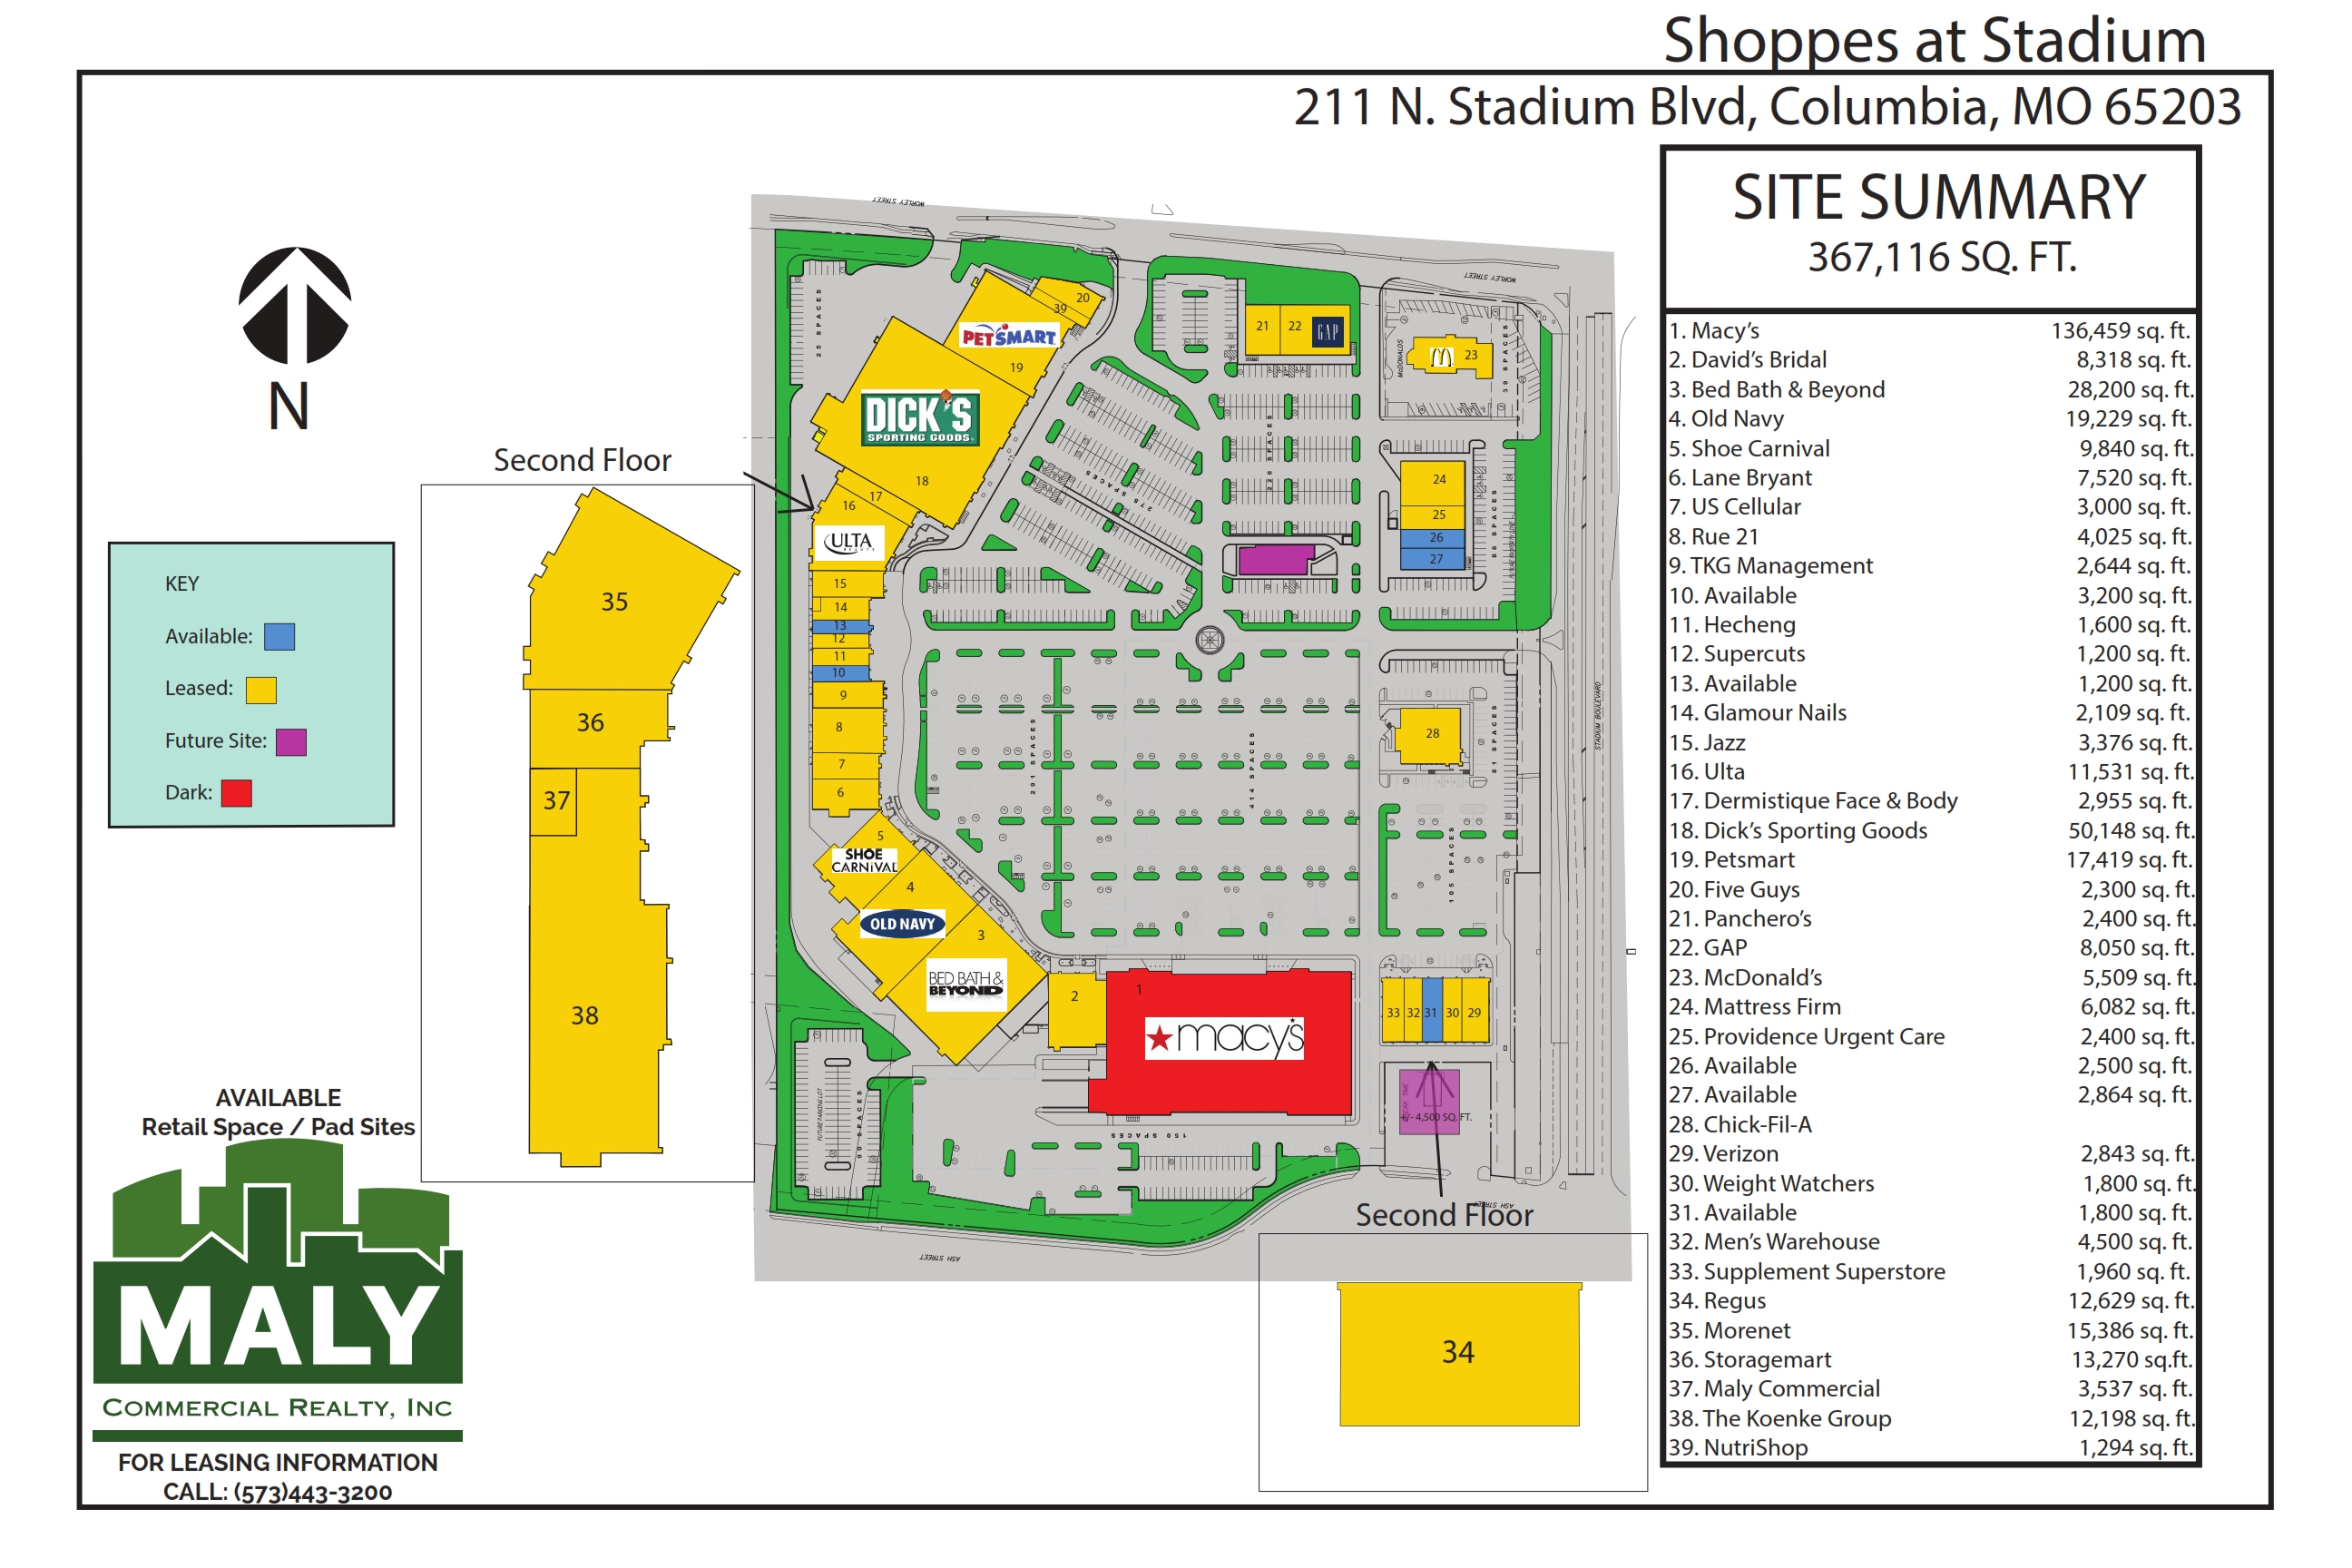 Shoppes at Stadium – Unit 12